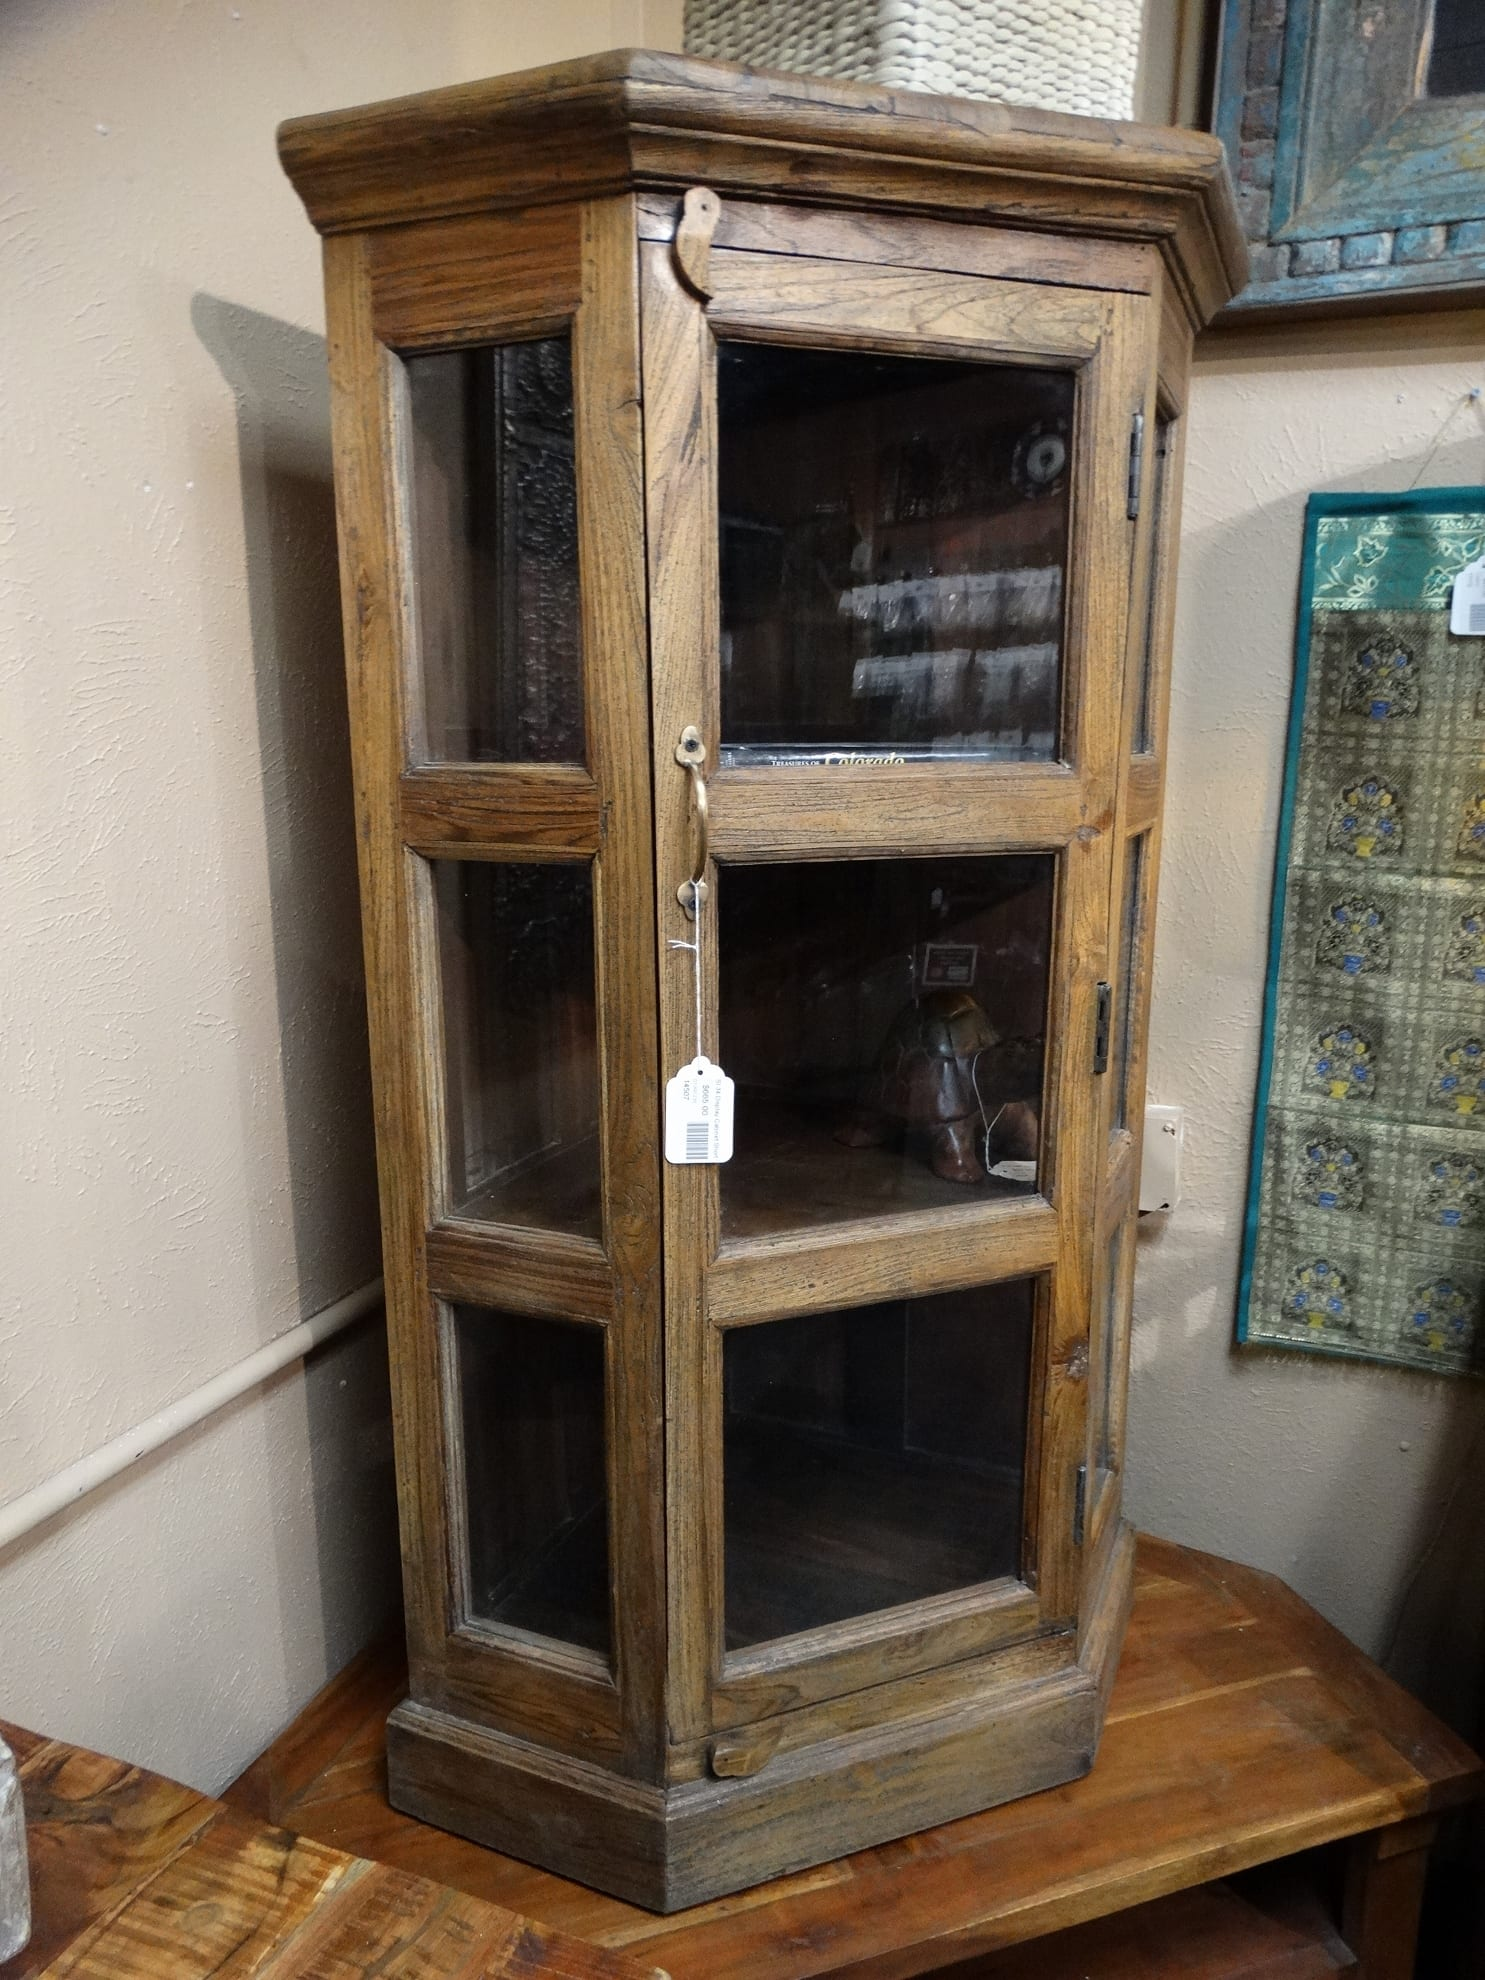 Wood and Glass Corner Cabinet has a natural finish and 3 ... on Corner Sconce Shelf Cabinet id=24265